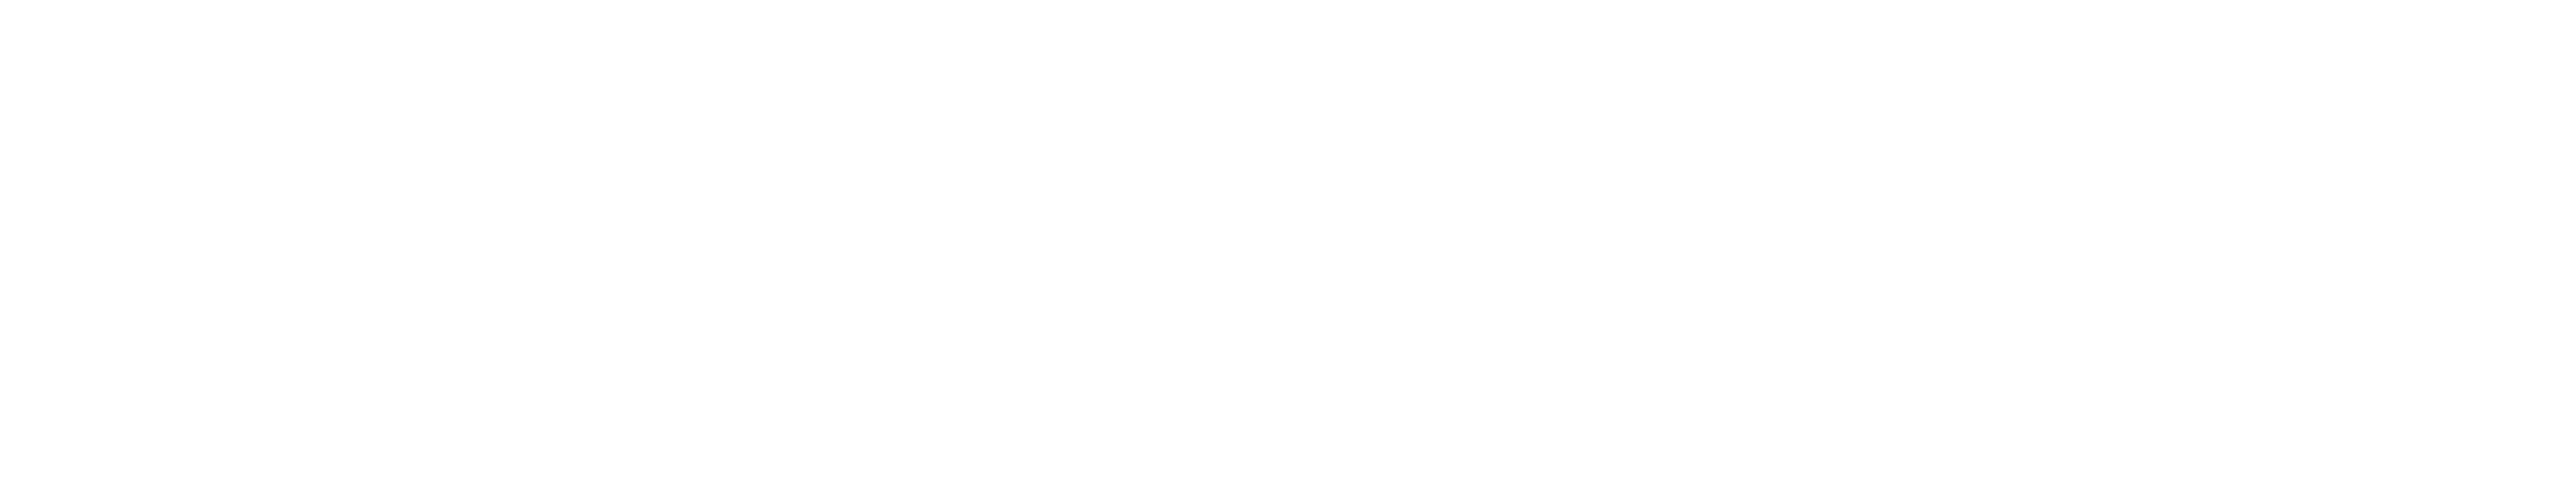 ClearCo_Firstbase.io